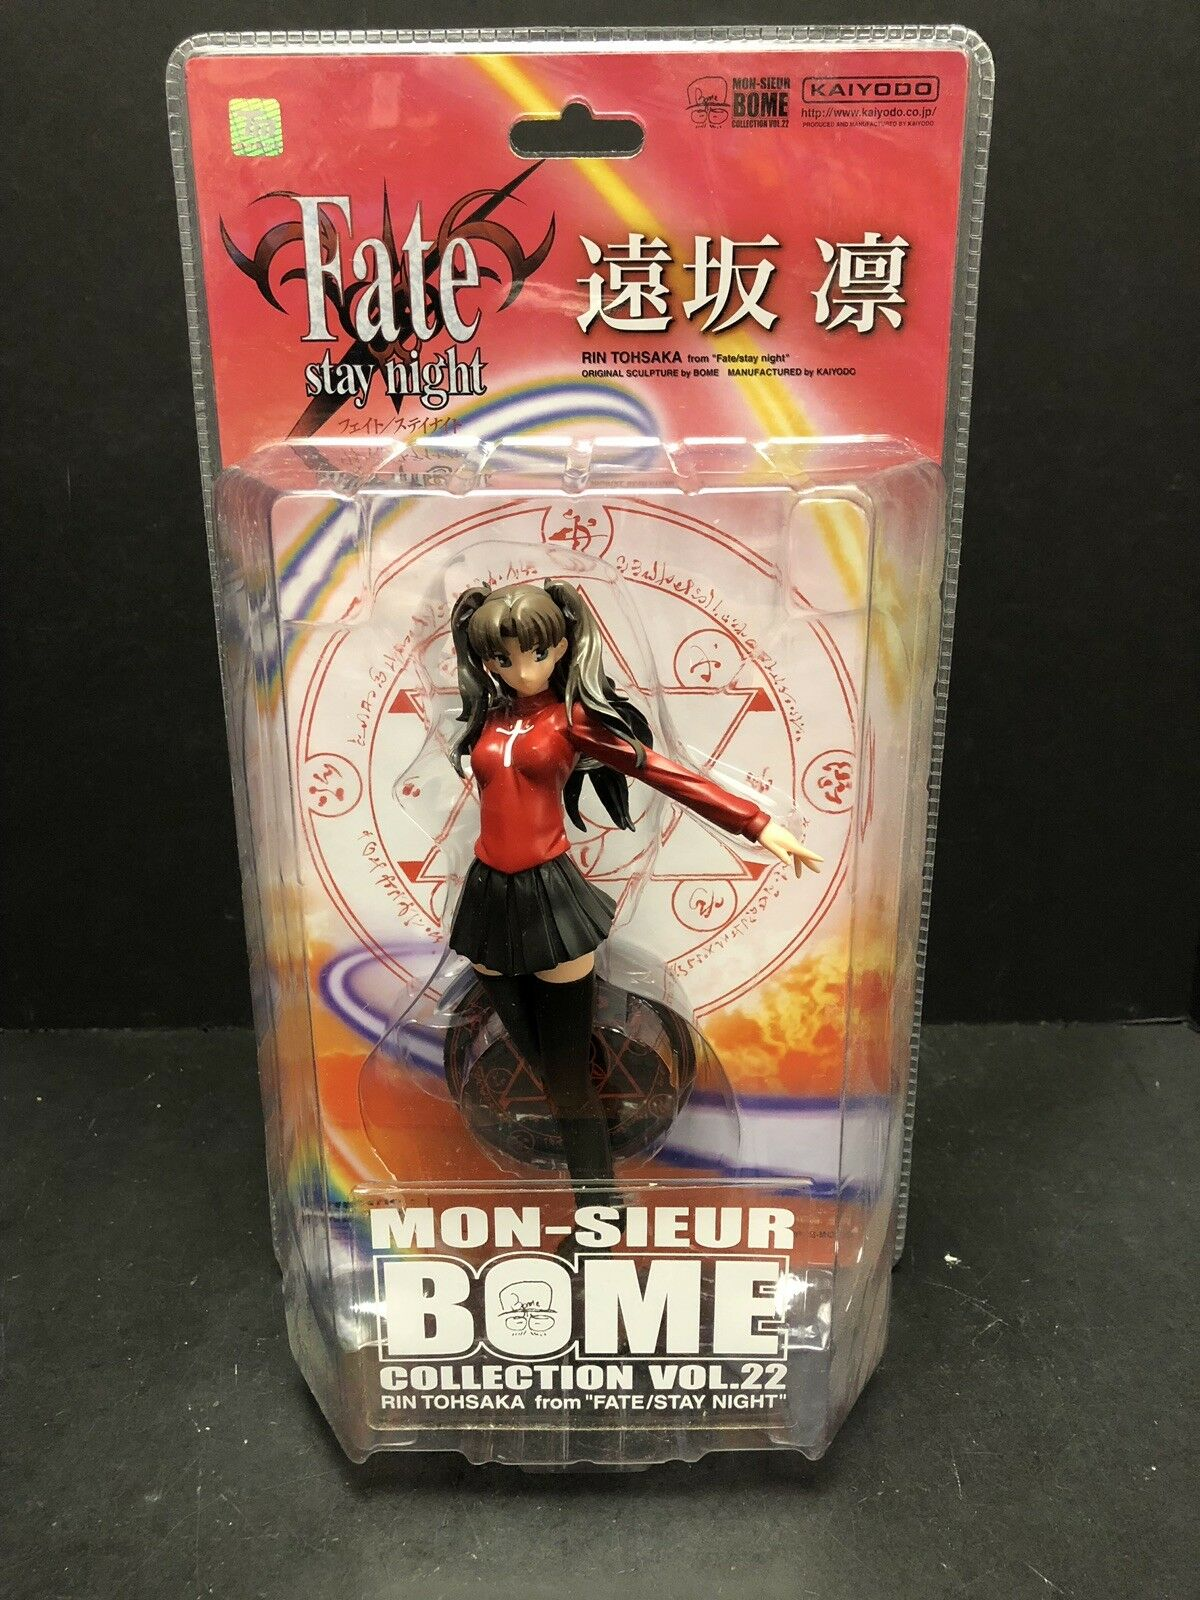 Kaiyodo Fate Stay Night Monsieur Bome Collection Vol.22 Anime cifra  ATL0700  prezzo all'ingrosso